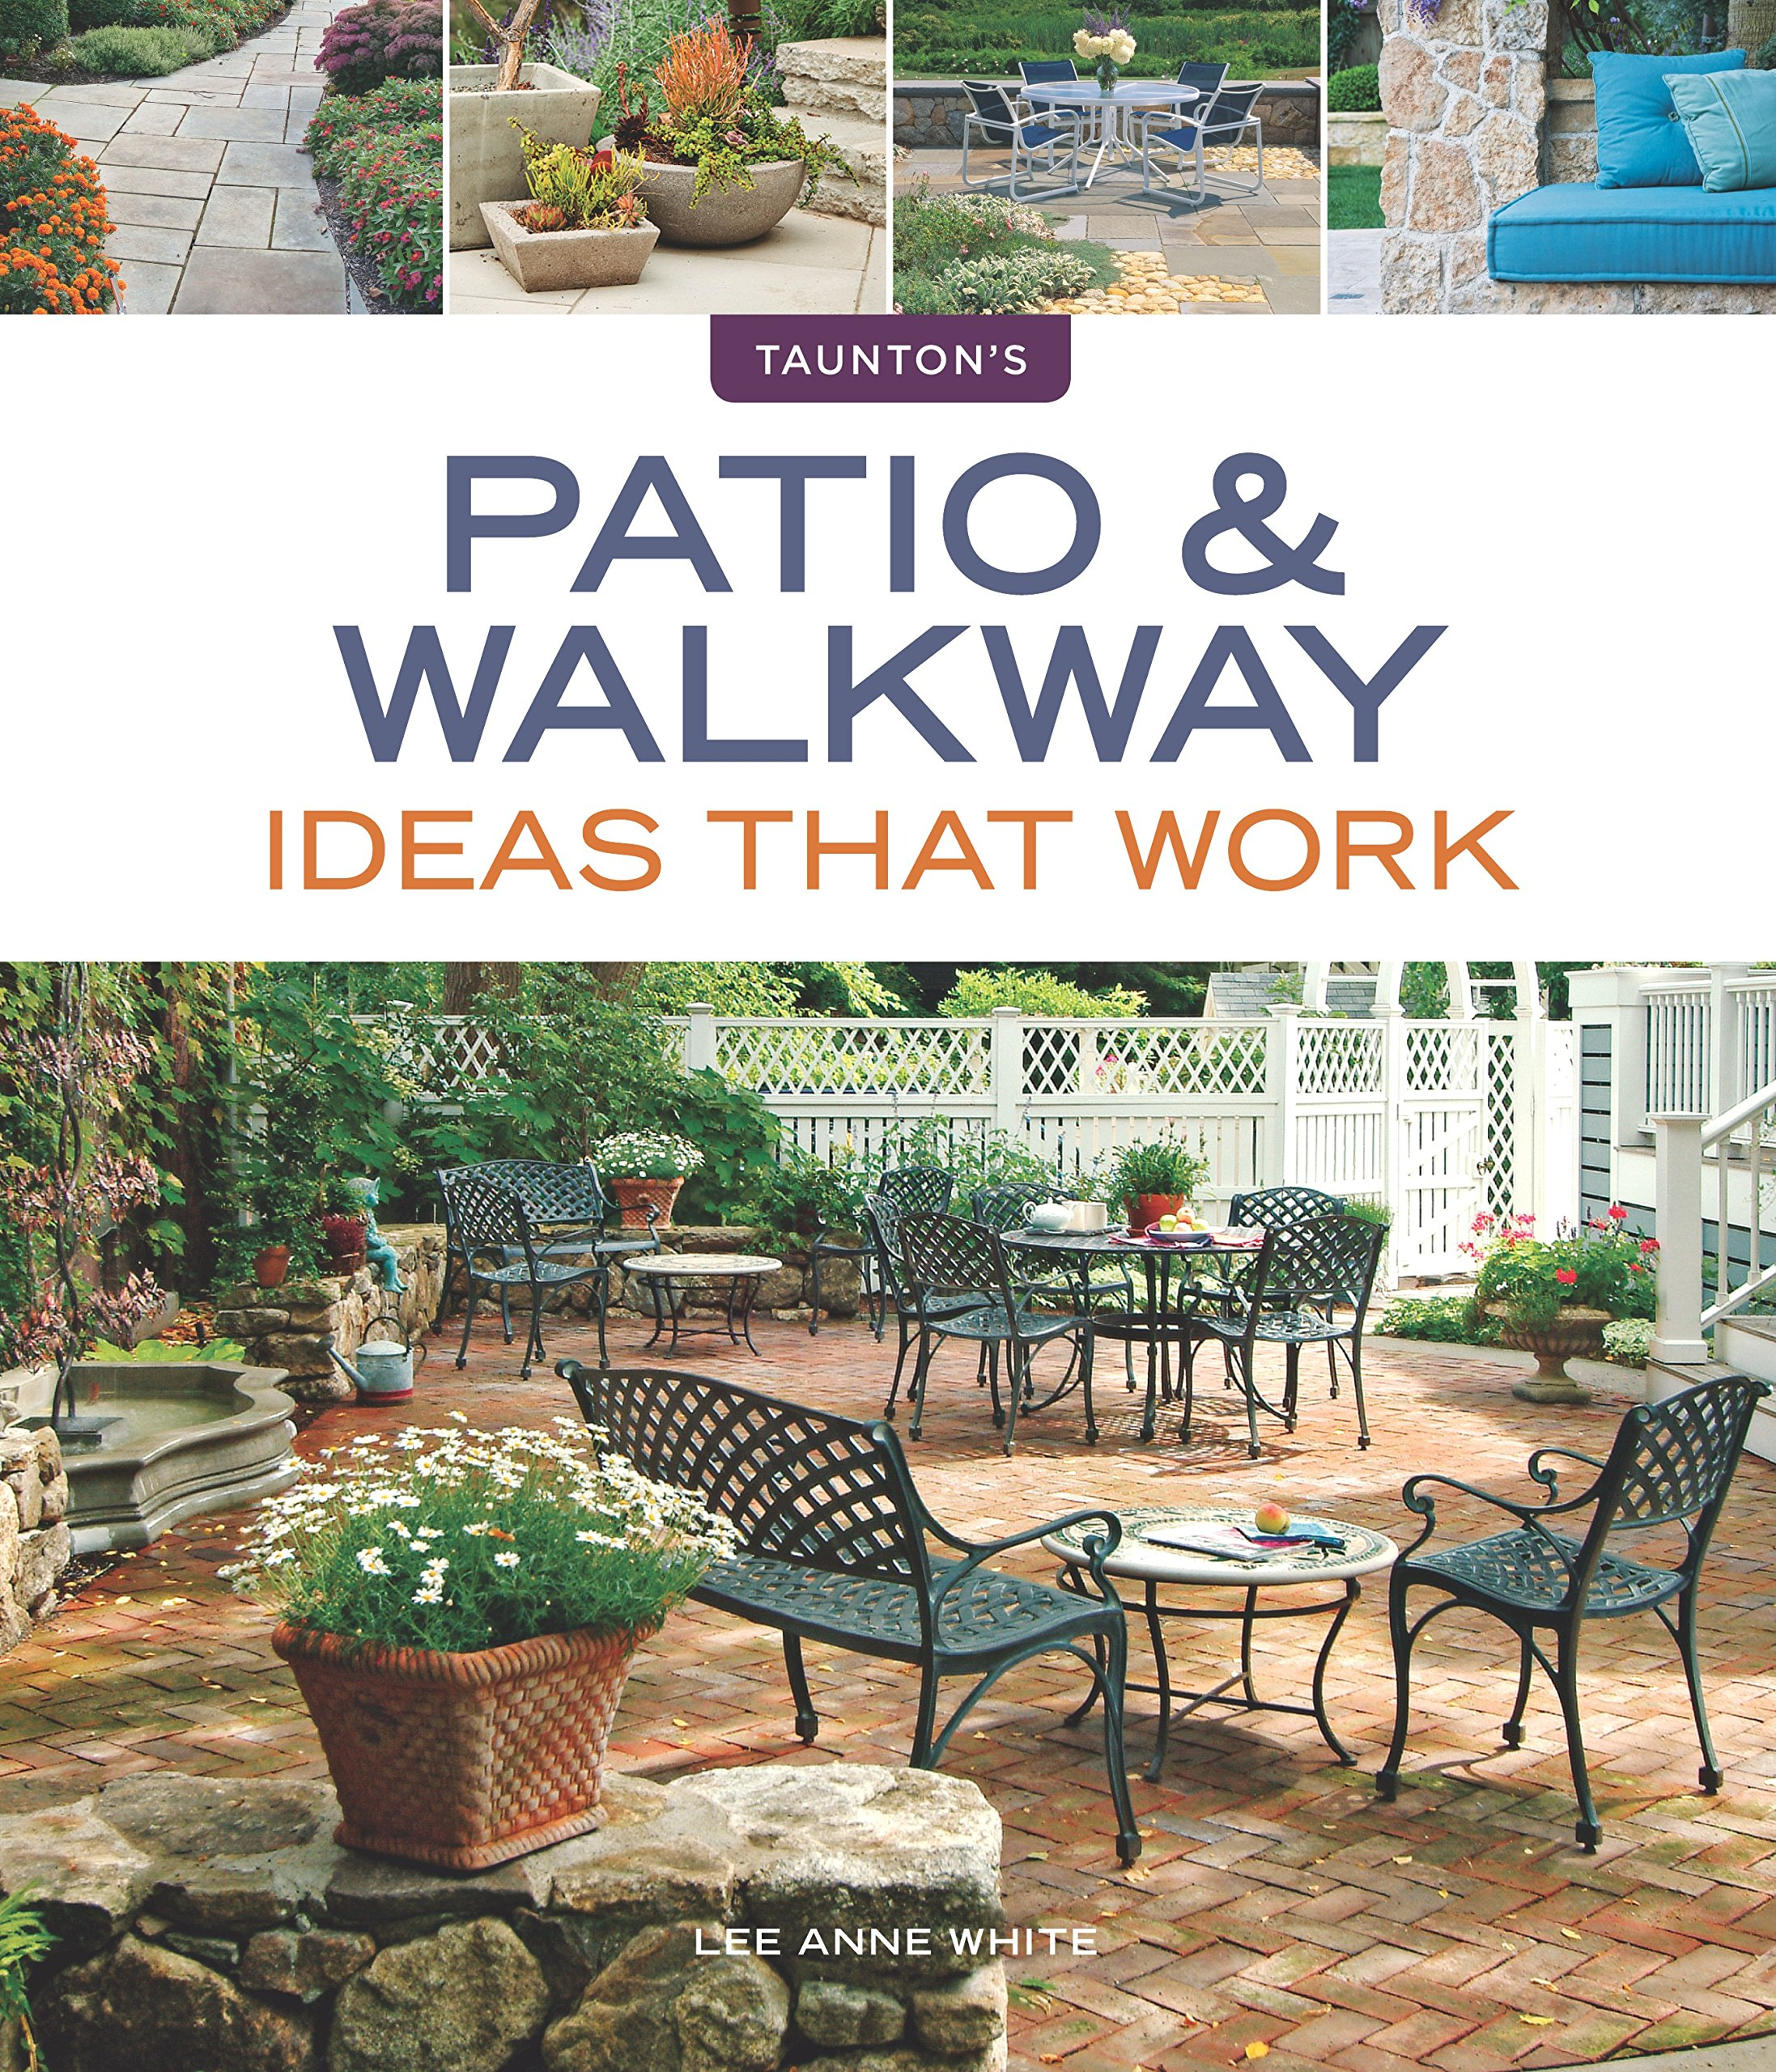 Patio U0026 Walkway Ideas That Work (Tauntonu0027s Ideas That Work): Lee Anne  White: 9781600854835: Amazon.com: Books